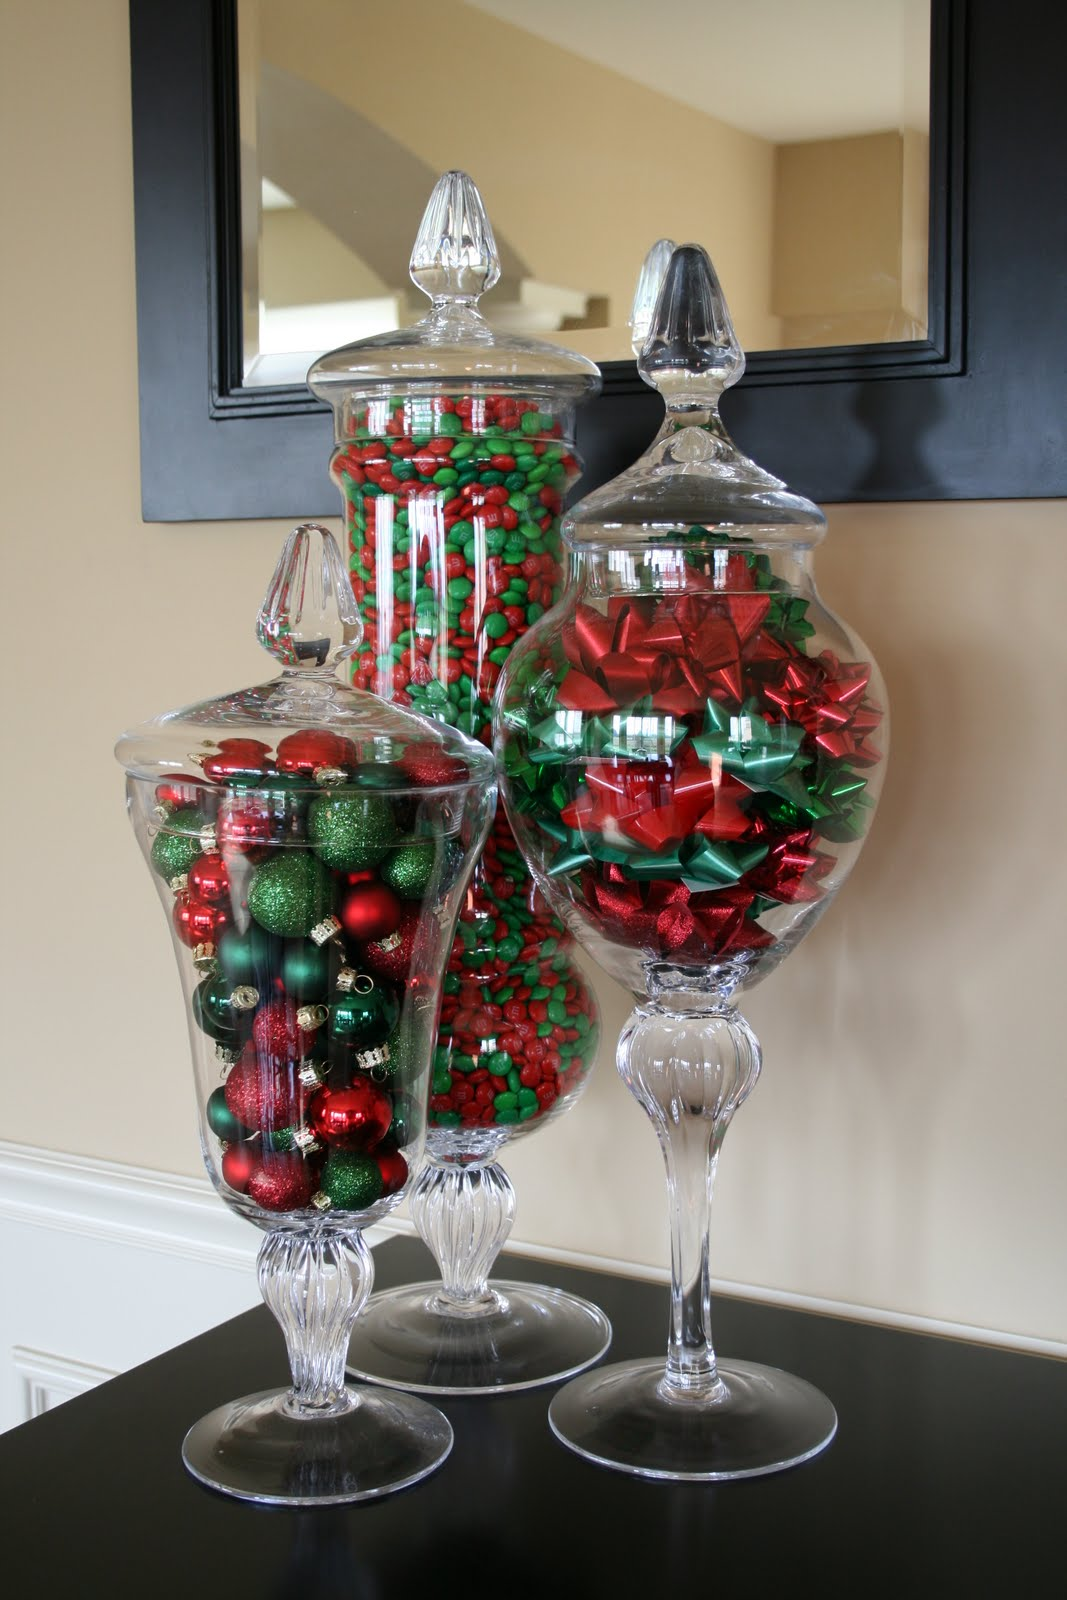 Christmas Decorations. Celebrate the season with festive indoor and outdoor Christmas decorating ideas. Find unique Christmas gift ideas, home decor and Christmas decorations at unbeatable prices.